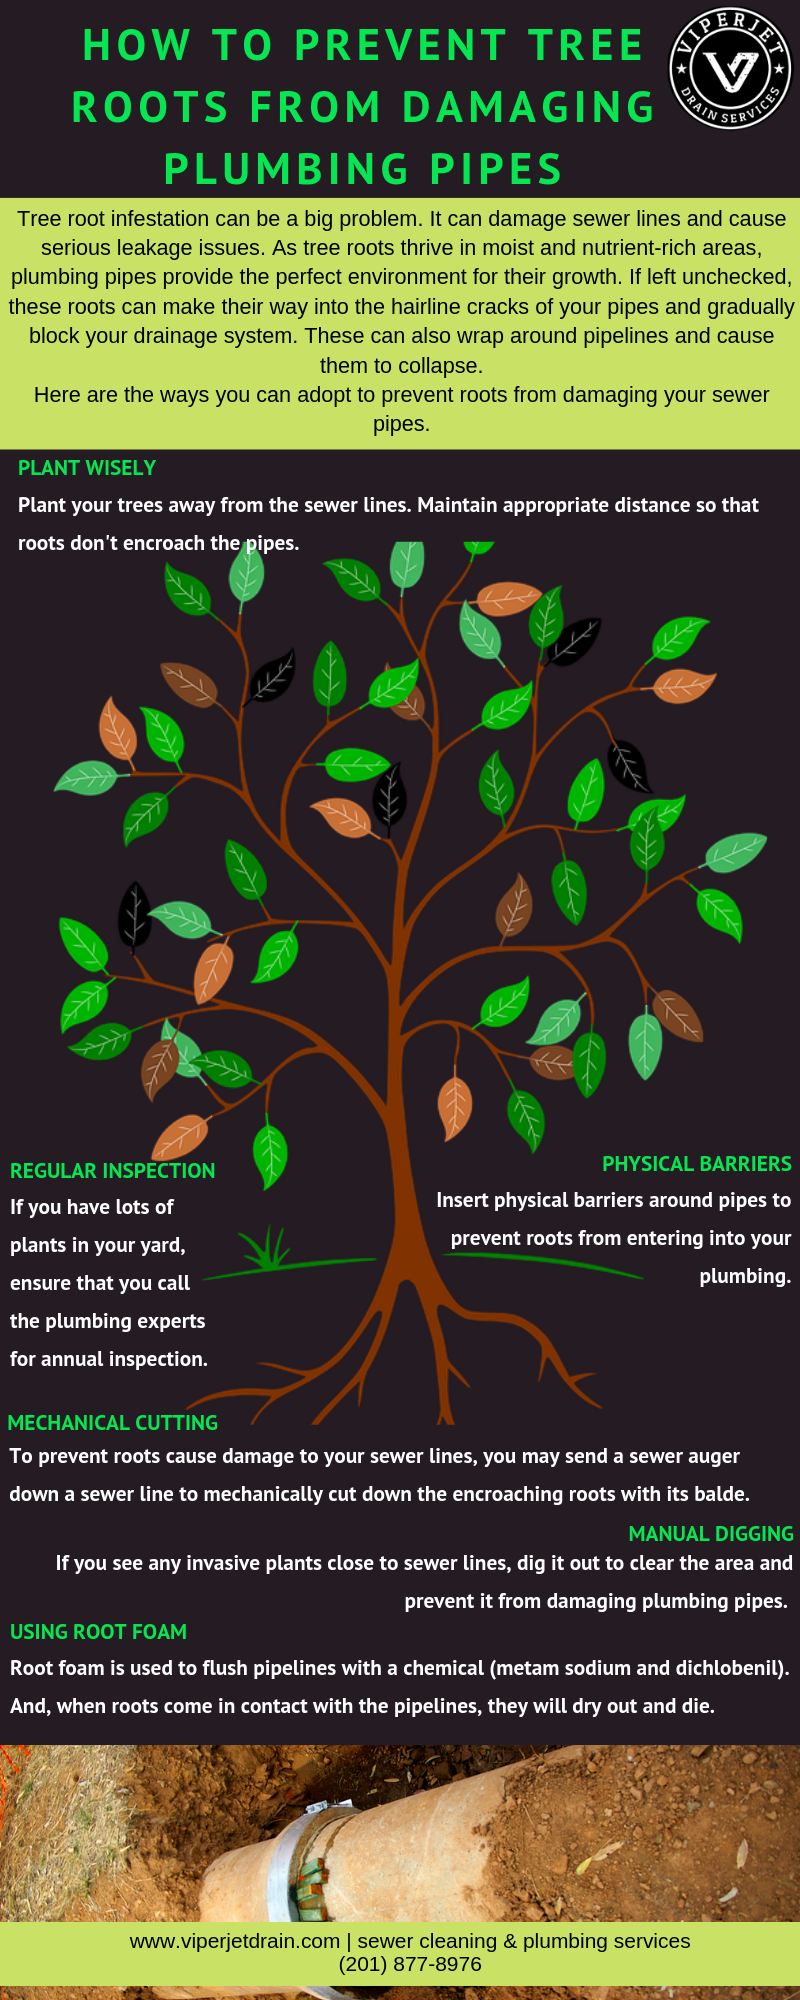 How-to-Prevent-Tree-Roots-from-Damaging-Plumbing-Pipes-infographic-plaza